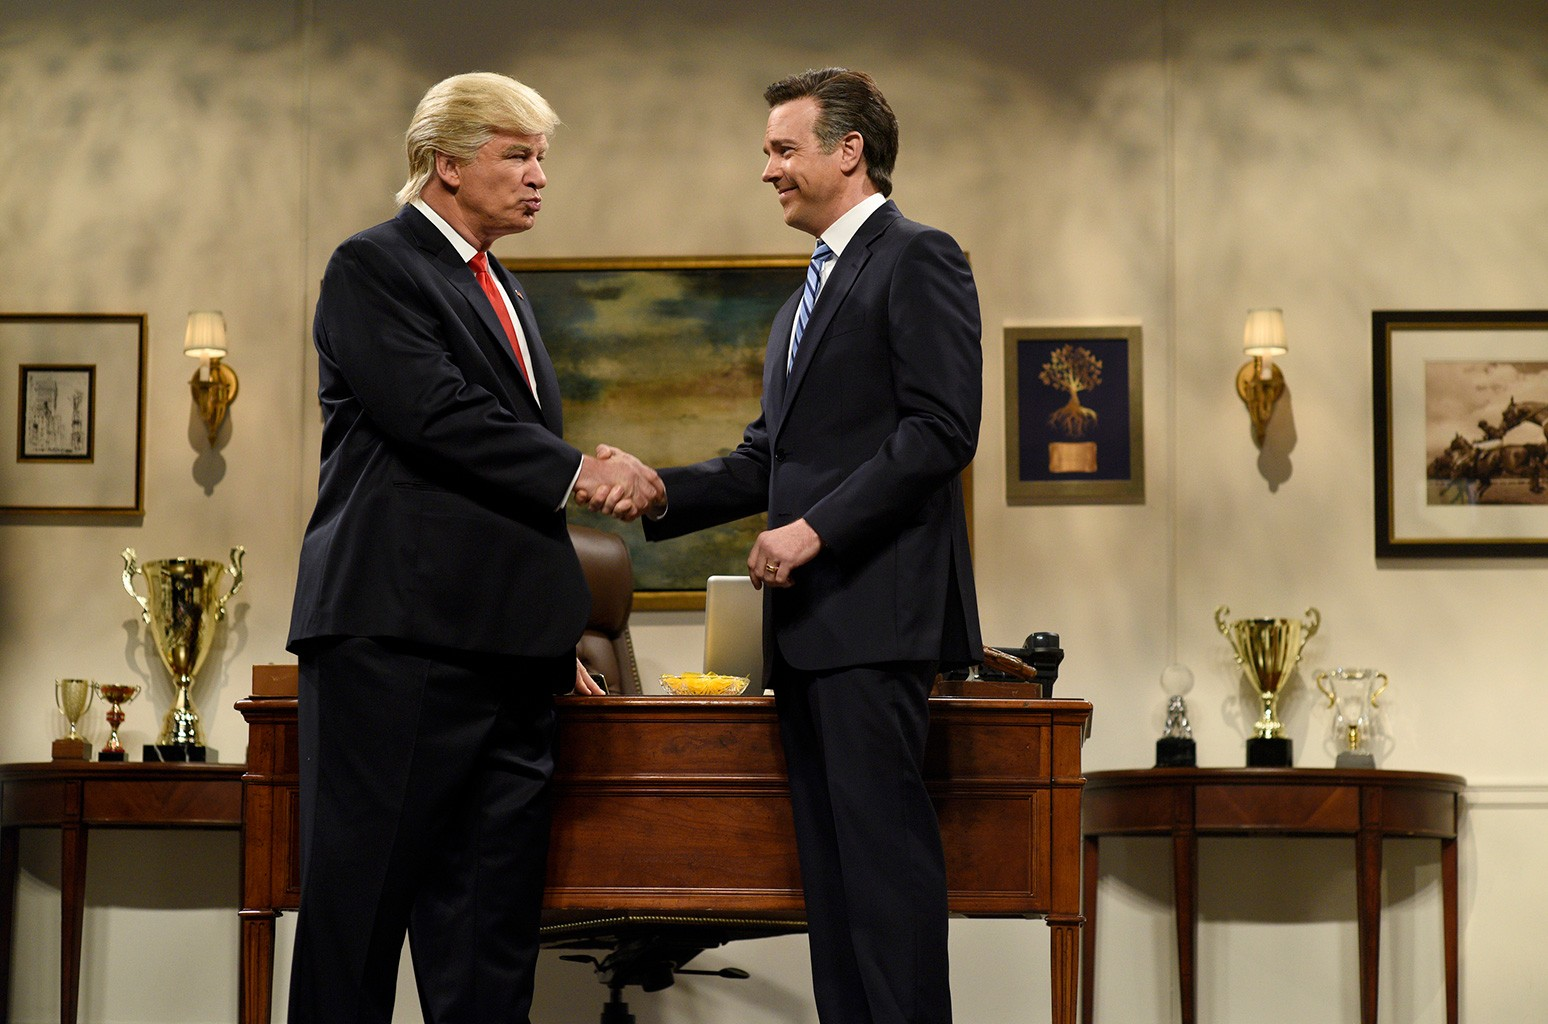 """Alec Baldwin as Donald Trump and Jason Sudeikis as Mitt Romney during the """"Donald Trump Prepares Cold Open"""" sketch on Saturday Night Live on Nov. 19, 2016."""